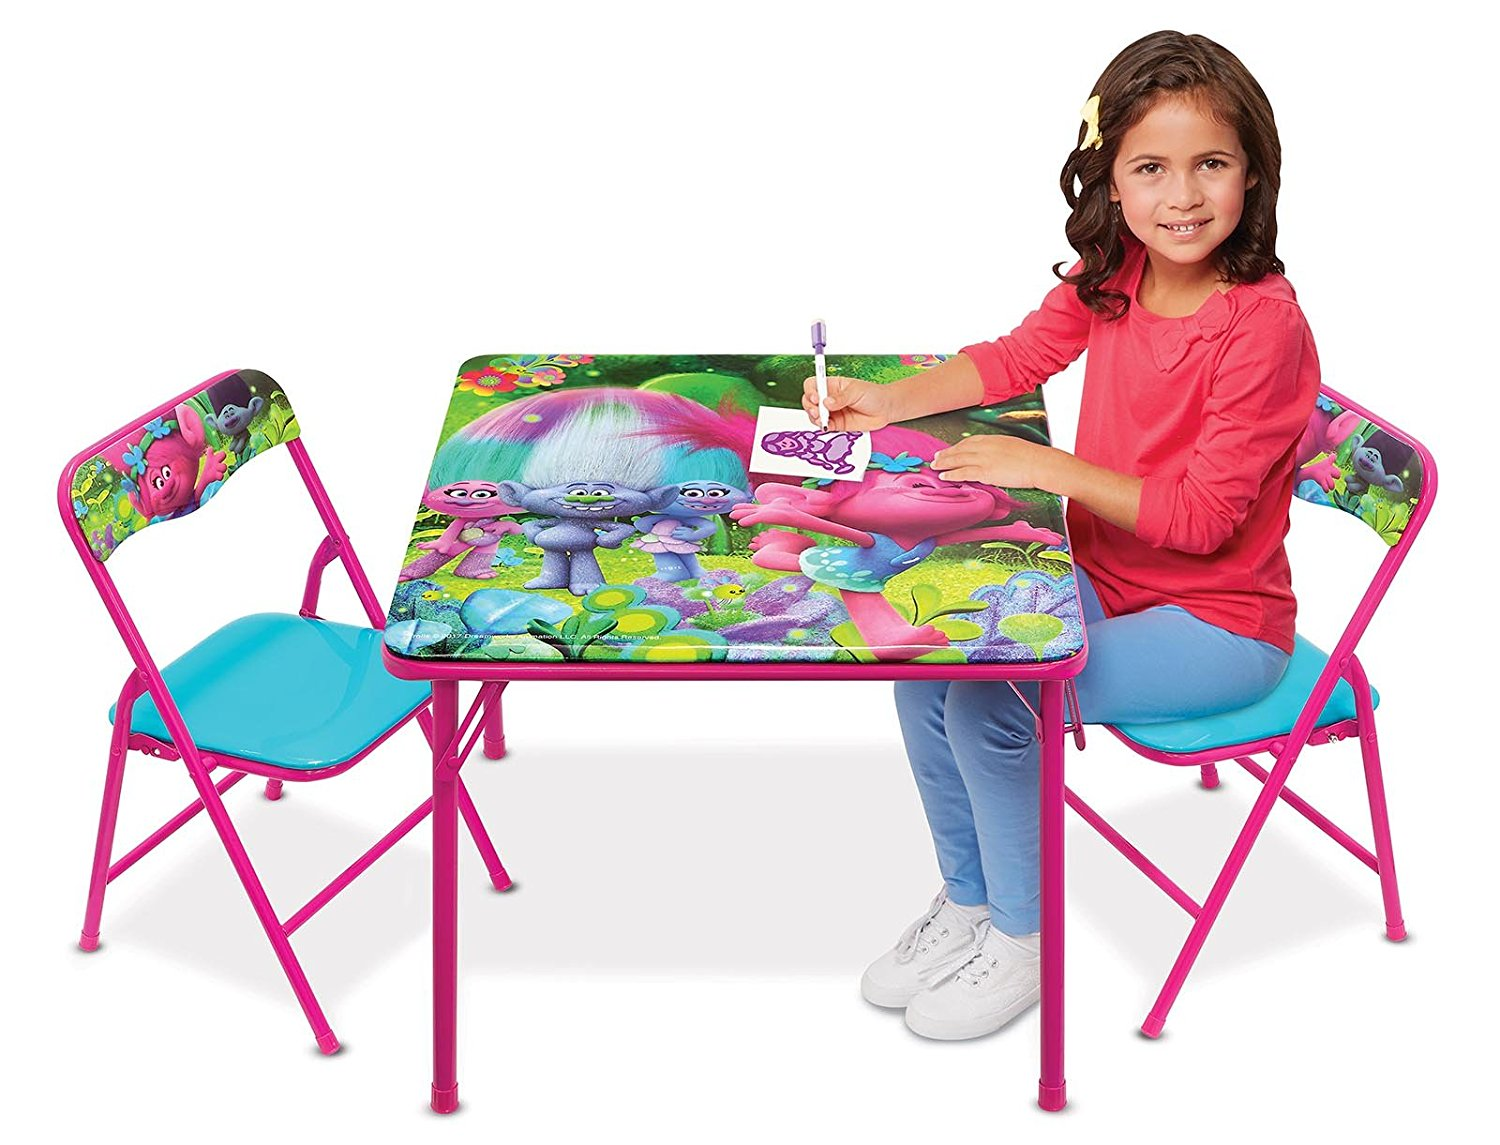 Tolls Trolls Activity Table Set  sc 1 st  Party Supply Factory & Tolls Trolls Activity Table Set u2013 Party Supply Factory